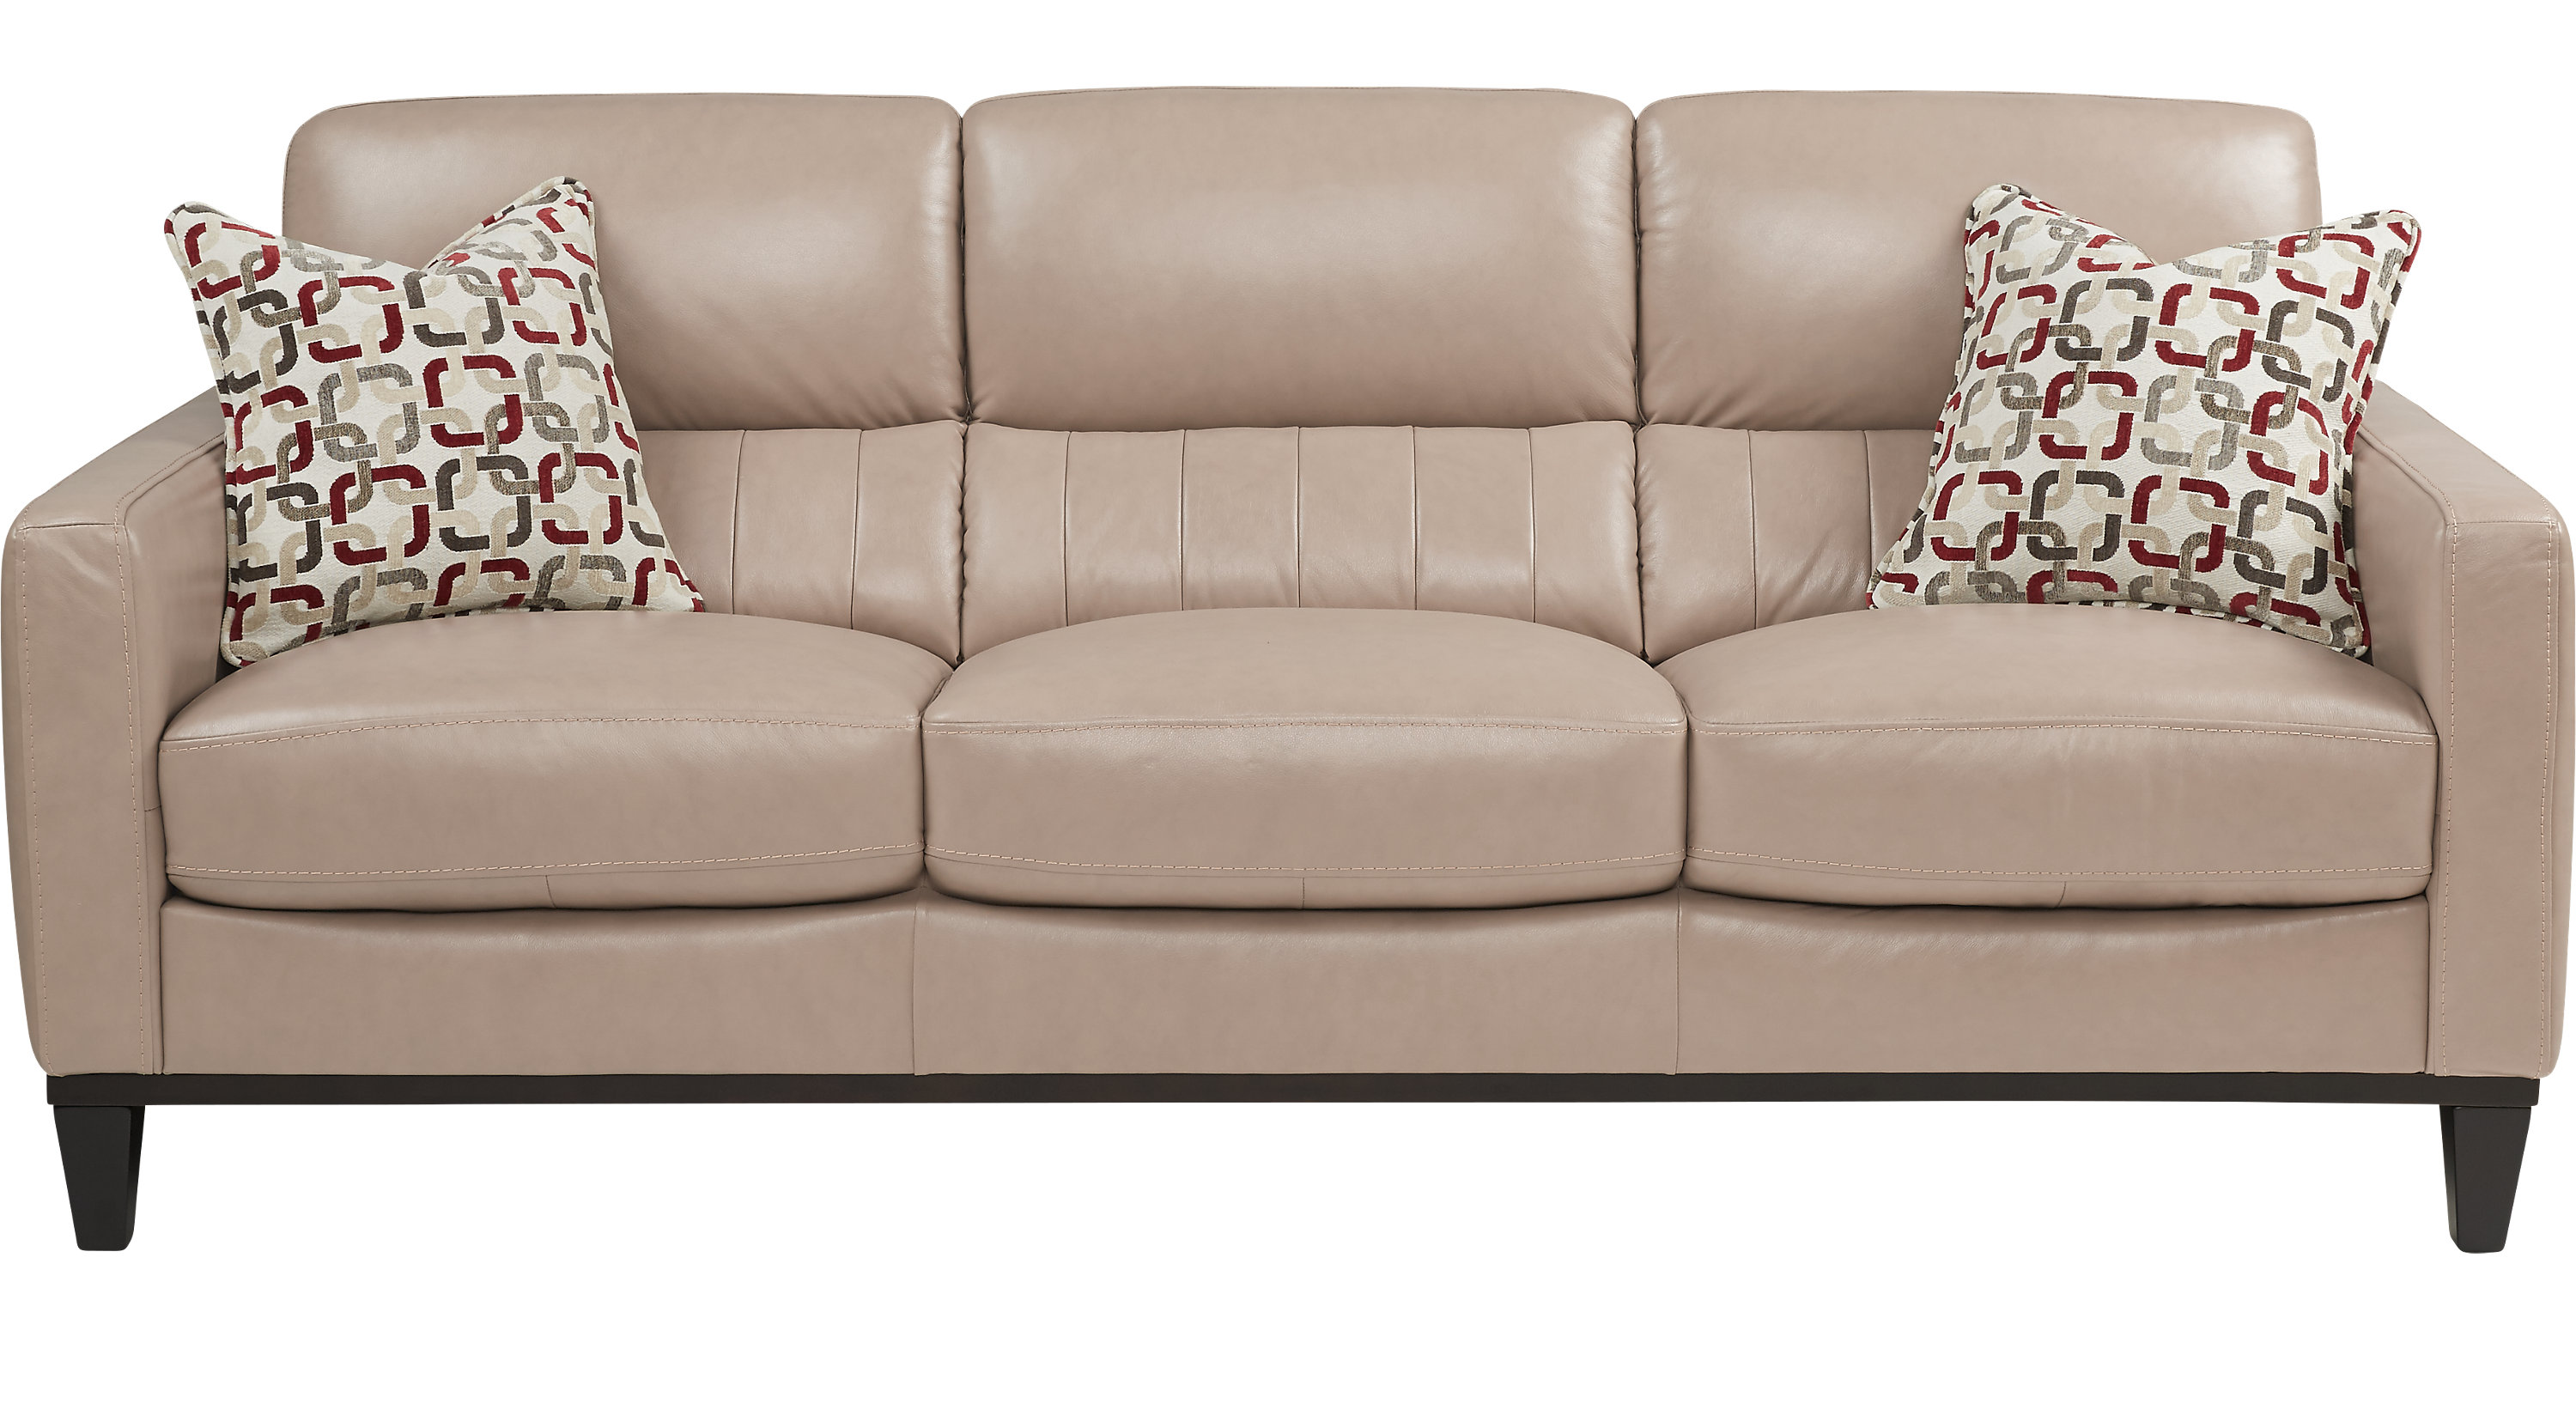 Prospect Park Sand Beige Leather Sofa